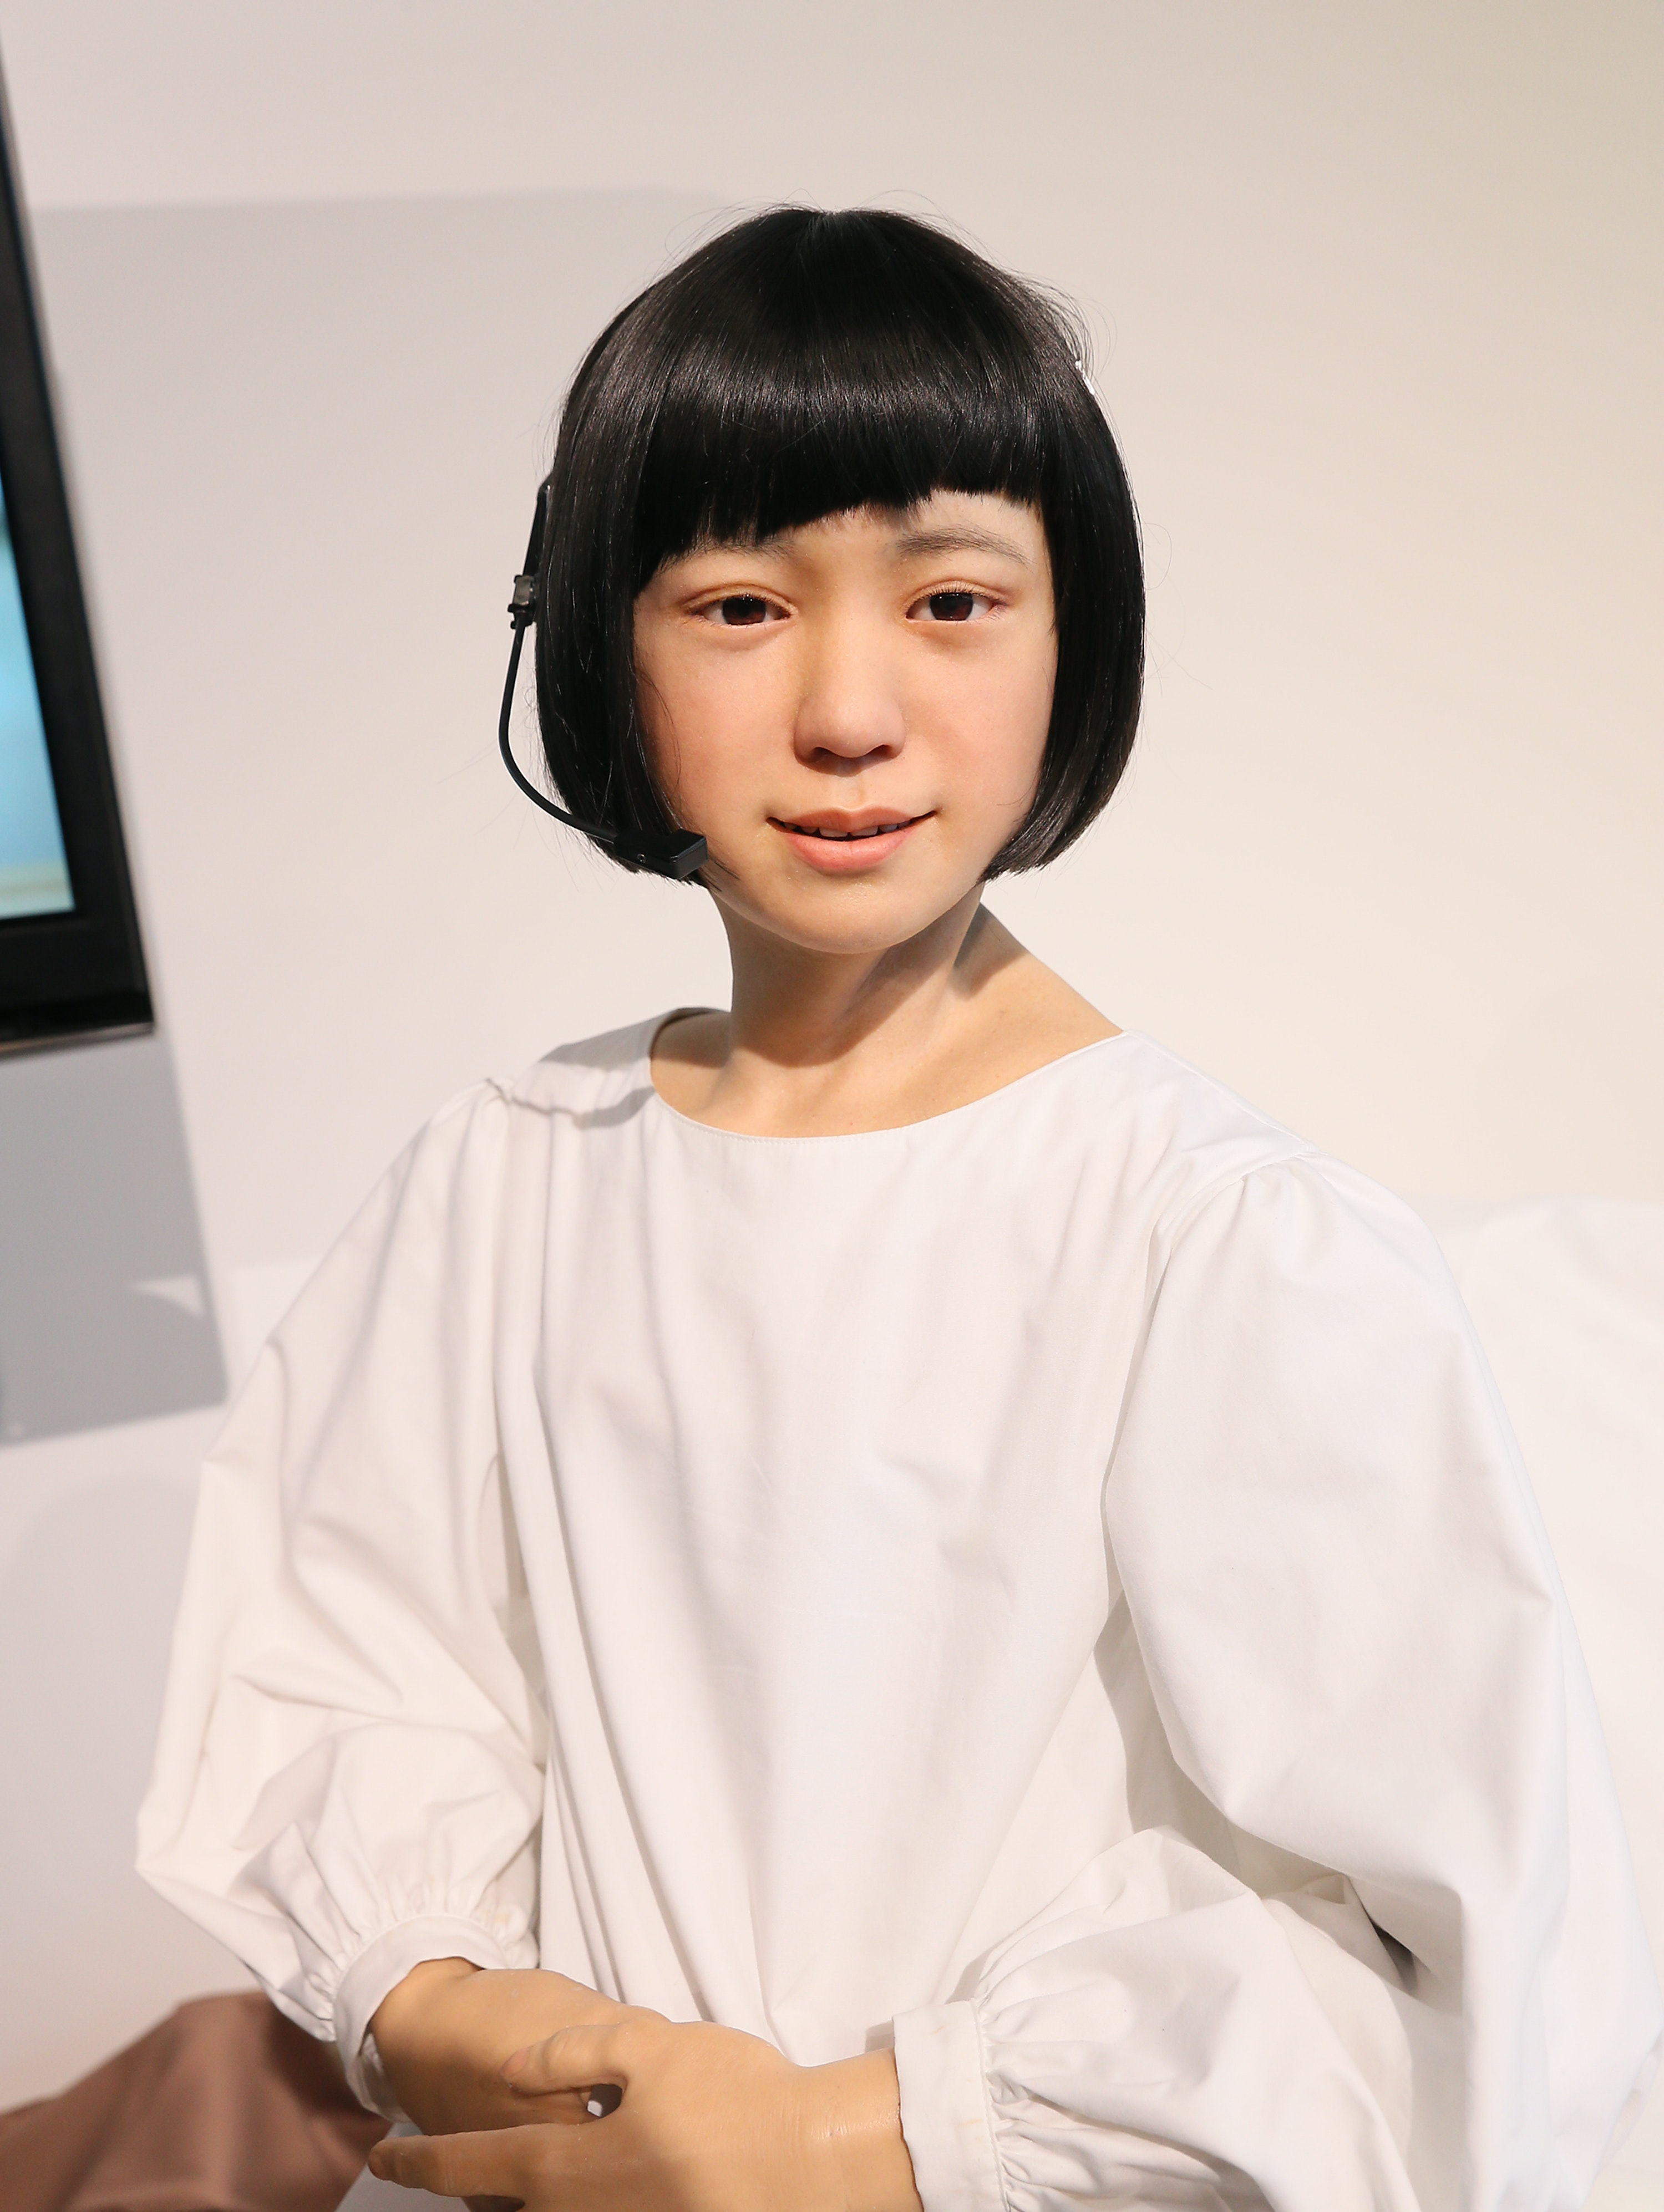 TOKYO, JAPAN - JANUARY 20:  Humanoid robot 'Kodomoroid' talks during the press conference to introduce the sociable robots, 'CommU' and 'Sota' hosted by only the robot science communicator Otonaroid and the robot anchor Kodomoroid at the National Museum of Emerging Science and Technology (Miraikan) on January 20, 2015 in Tokyo, Japan. CommU and Sota, developed to improve humanoids' sense of interaction in dialogue, make people feel more engaged in conversation with them by featuring diverse eye movements and gaze directions.  (Photo by Ken Ishii/Getty Images)